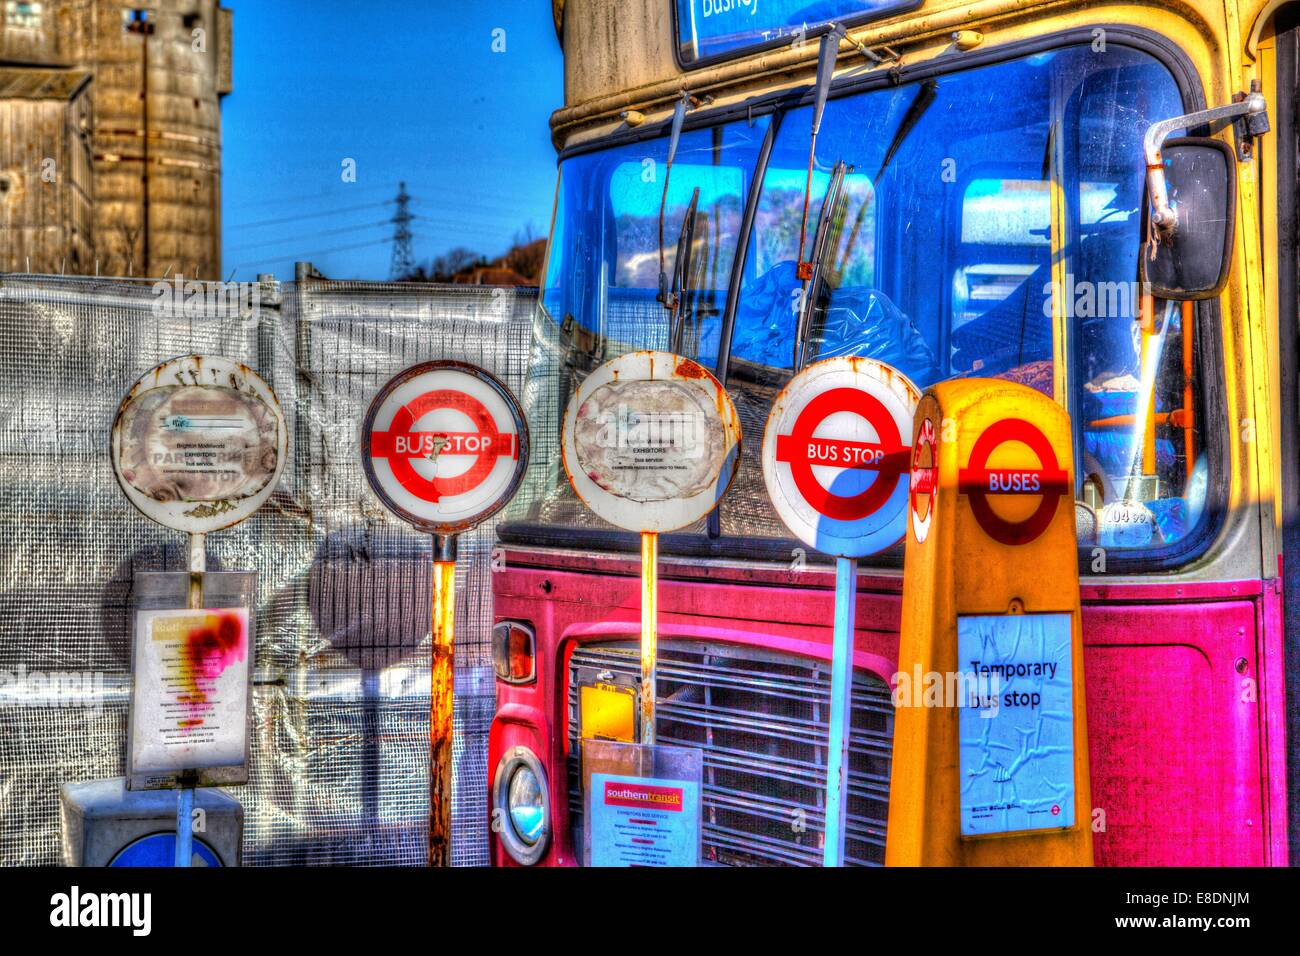 Old temporary Bus stop signs - Stock Image